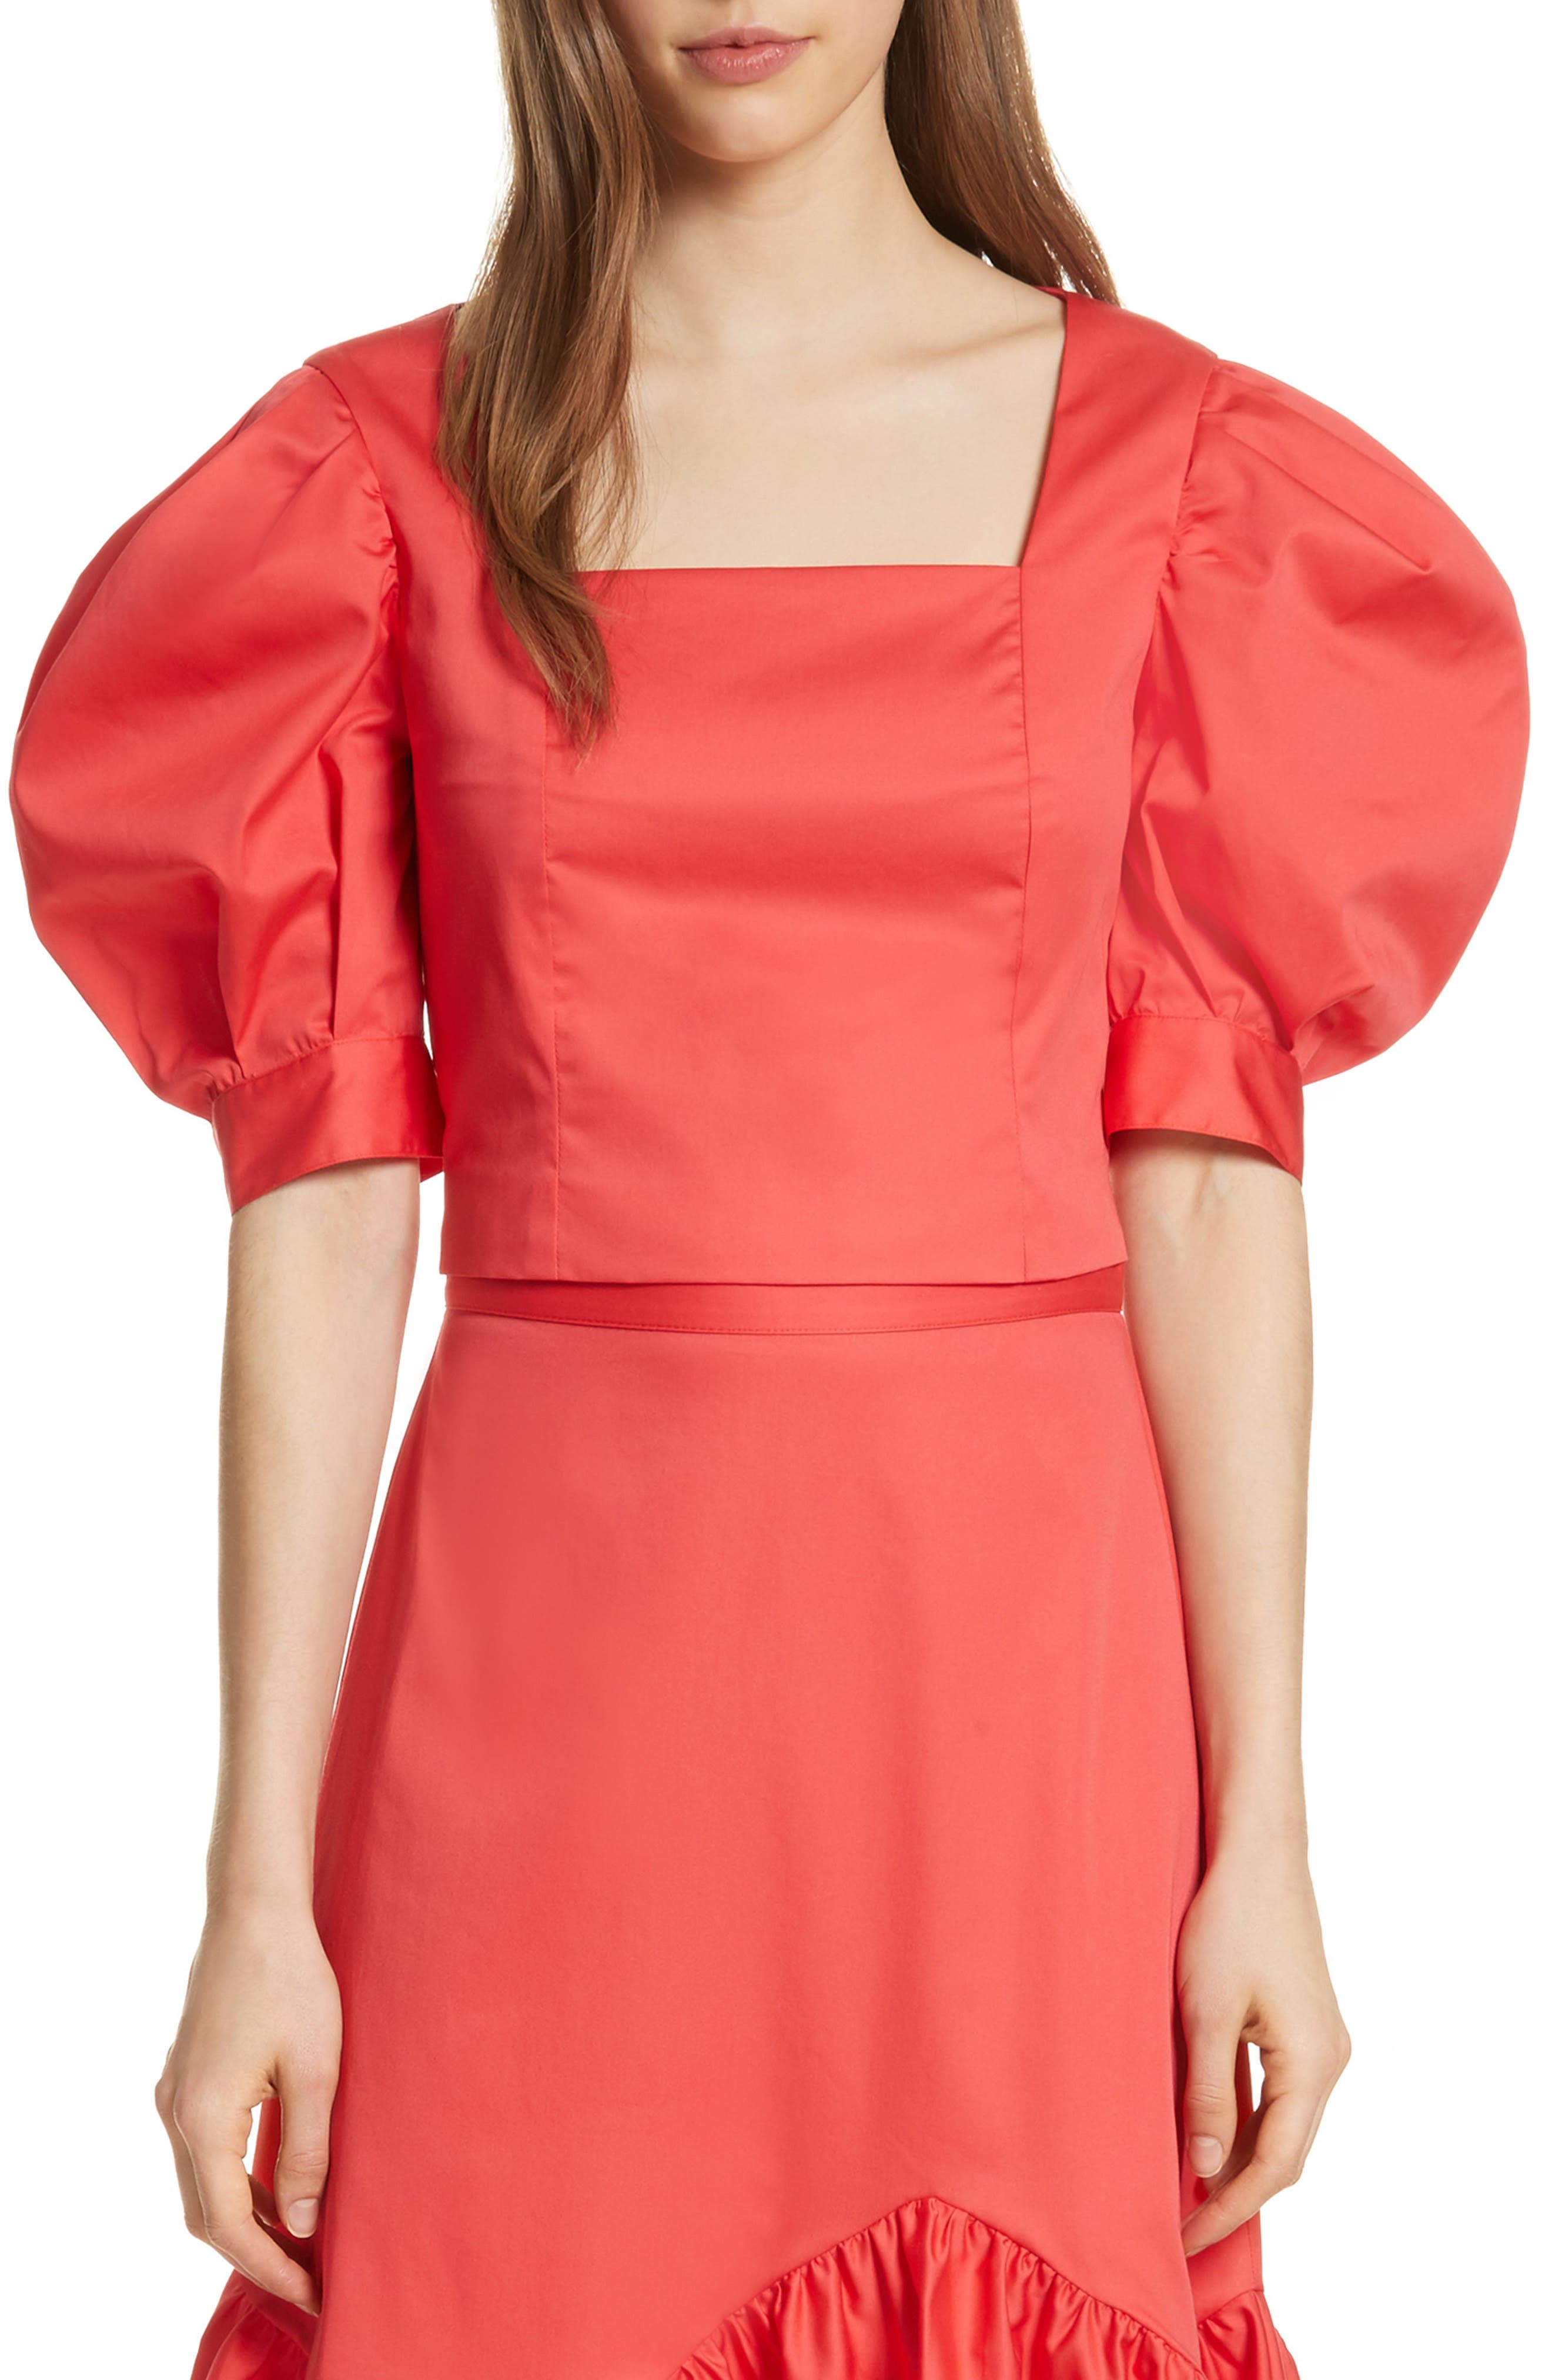 Prose & Poetry Claudia Puff Sleeve Top,                         Main,                         color, Watermelon